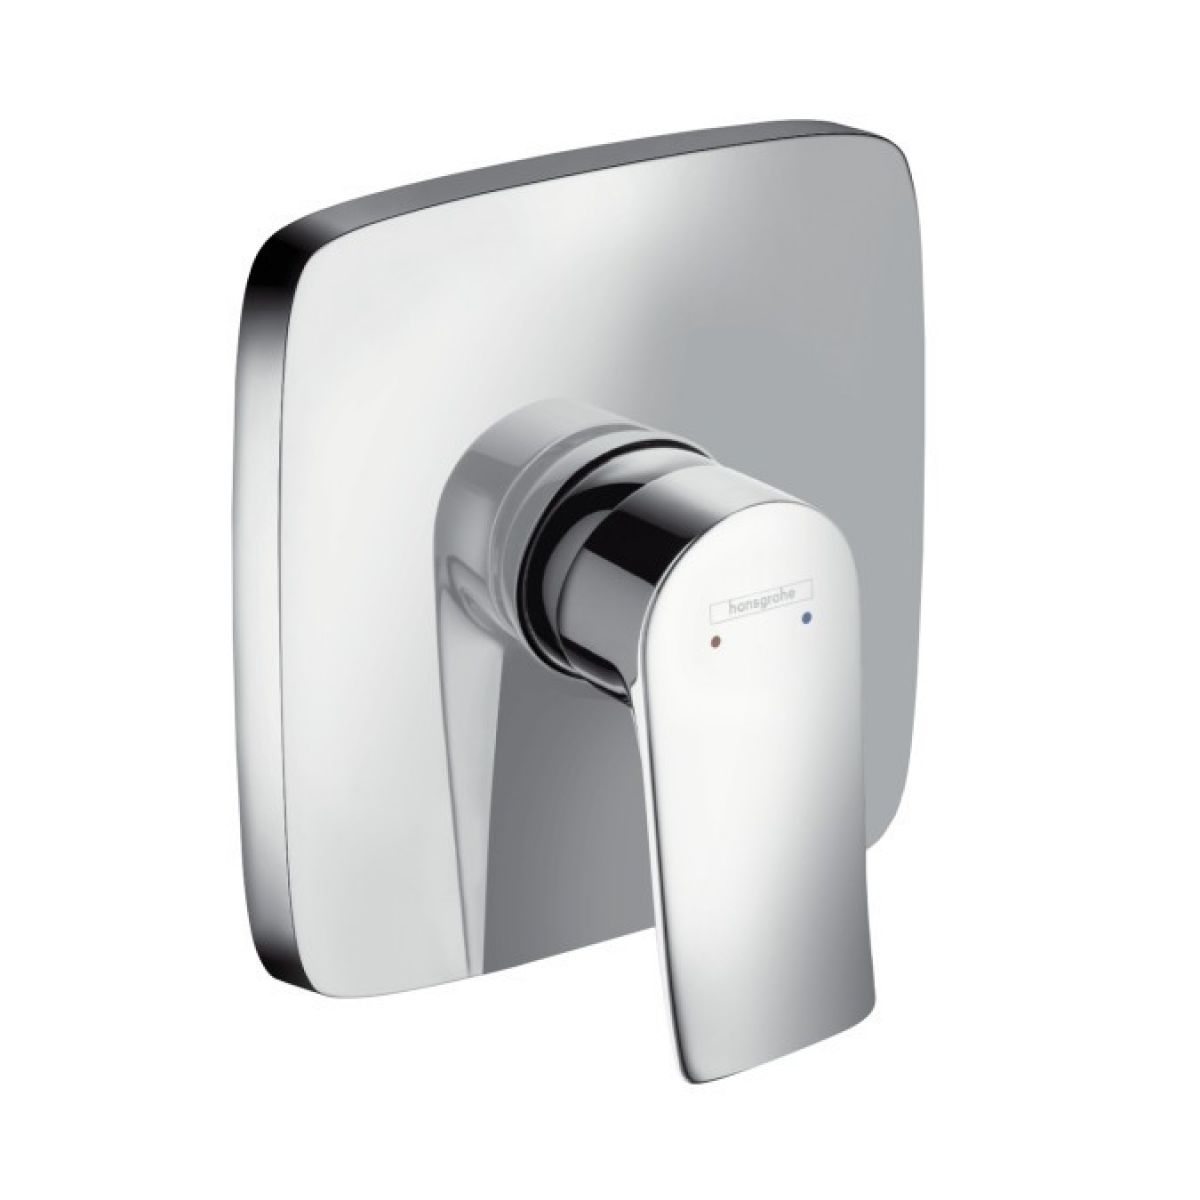 hansgrohe metris single lever shower valve uk bathrooms. Black Bedroom Furniture Sets. Home Design Ideas